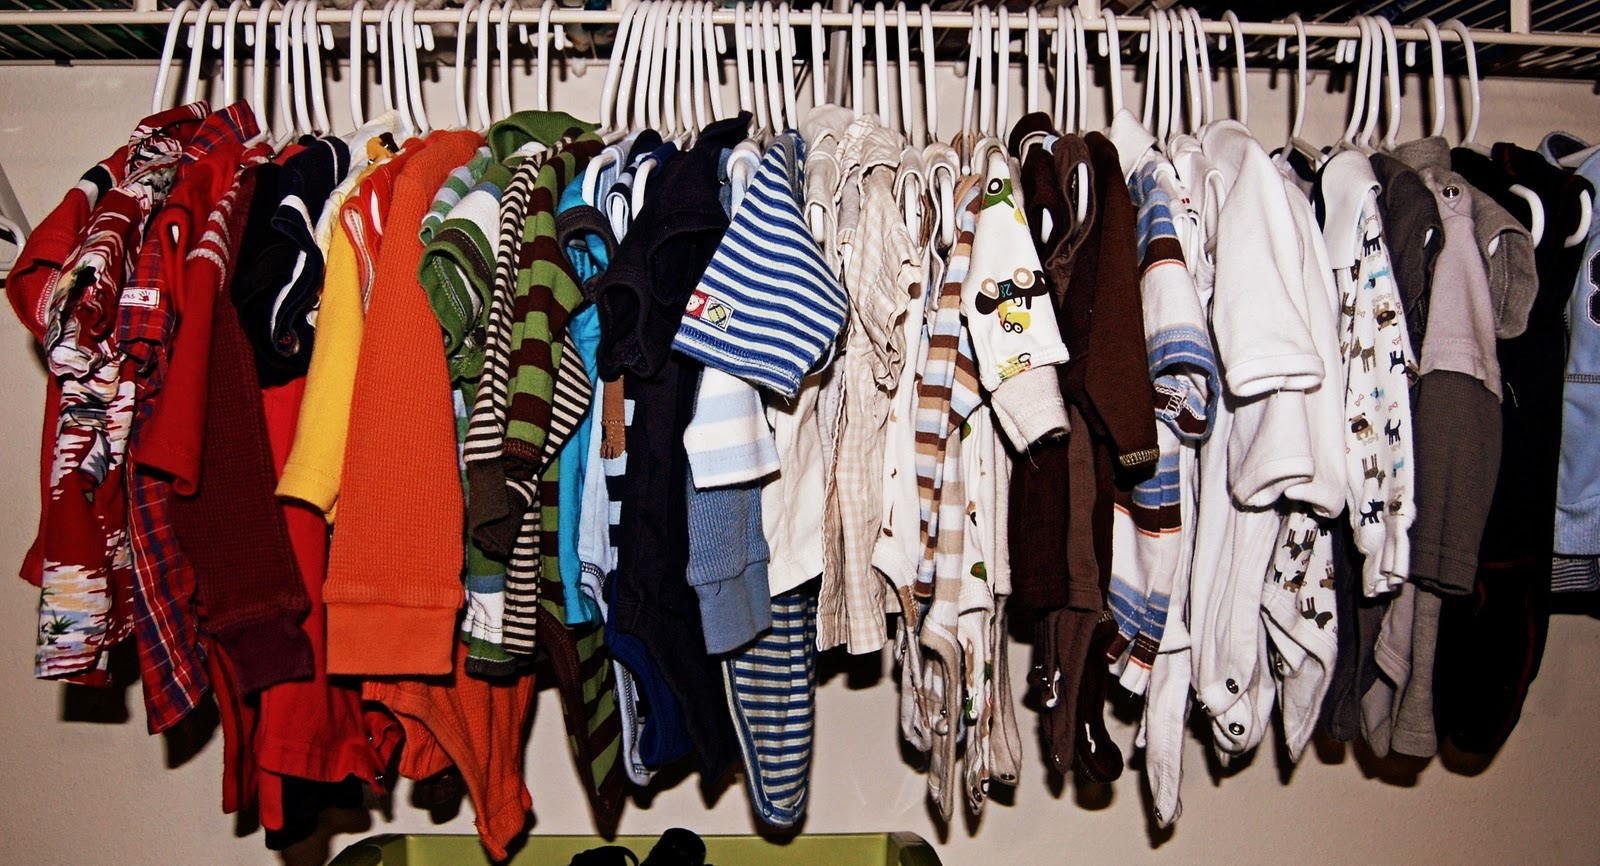 Every Closet In My House Has The Clothes In It Hung In Color Order... I  Realize I May Not Be The Only One Out There Who Does This.